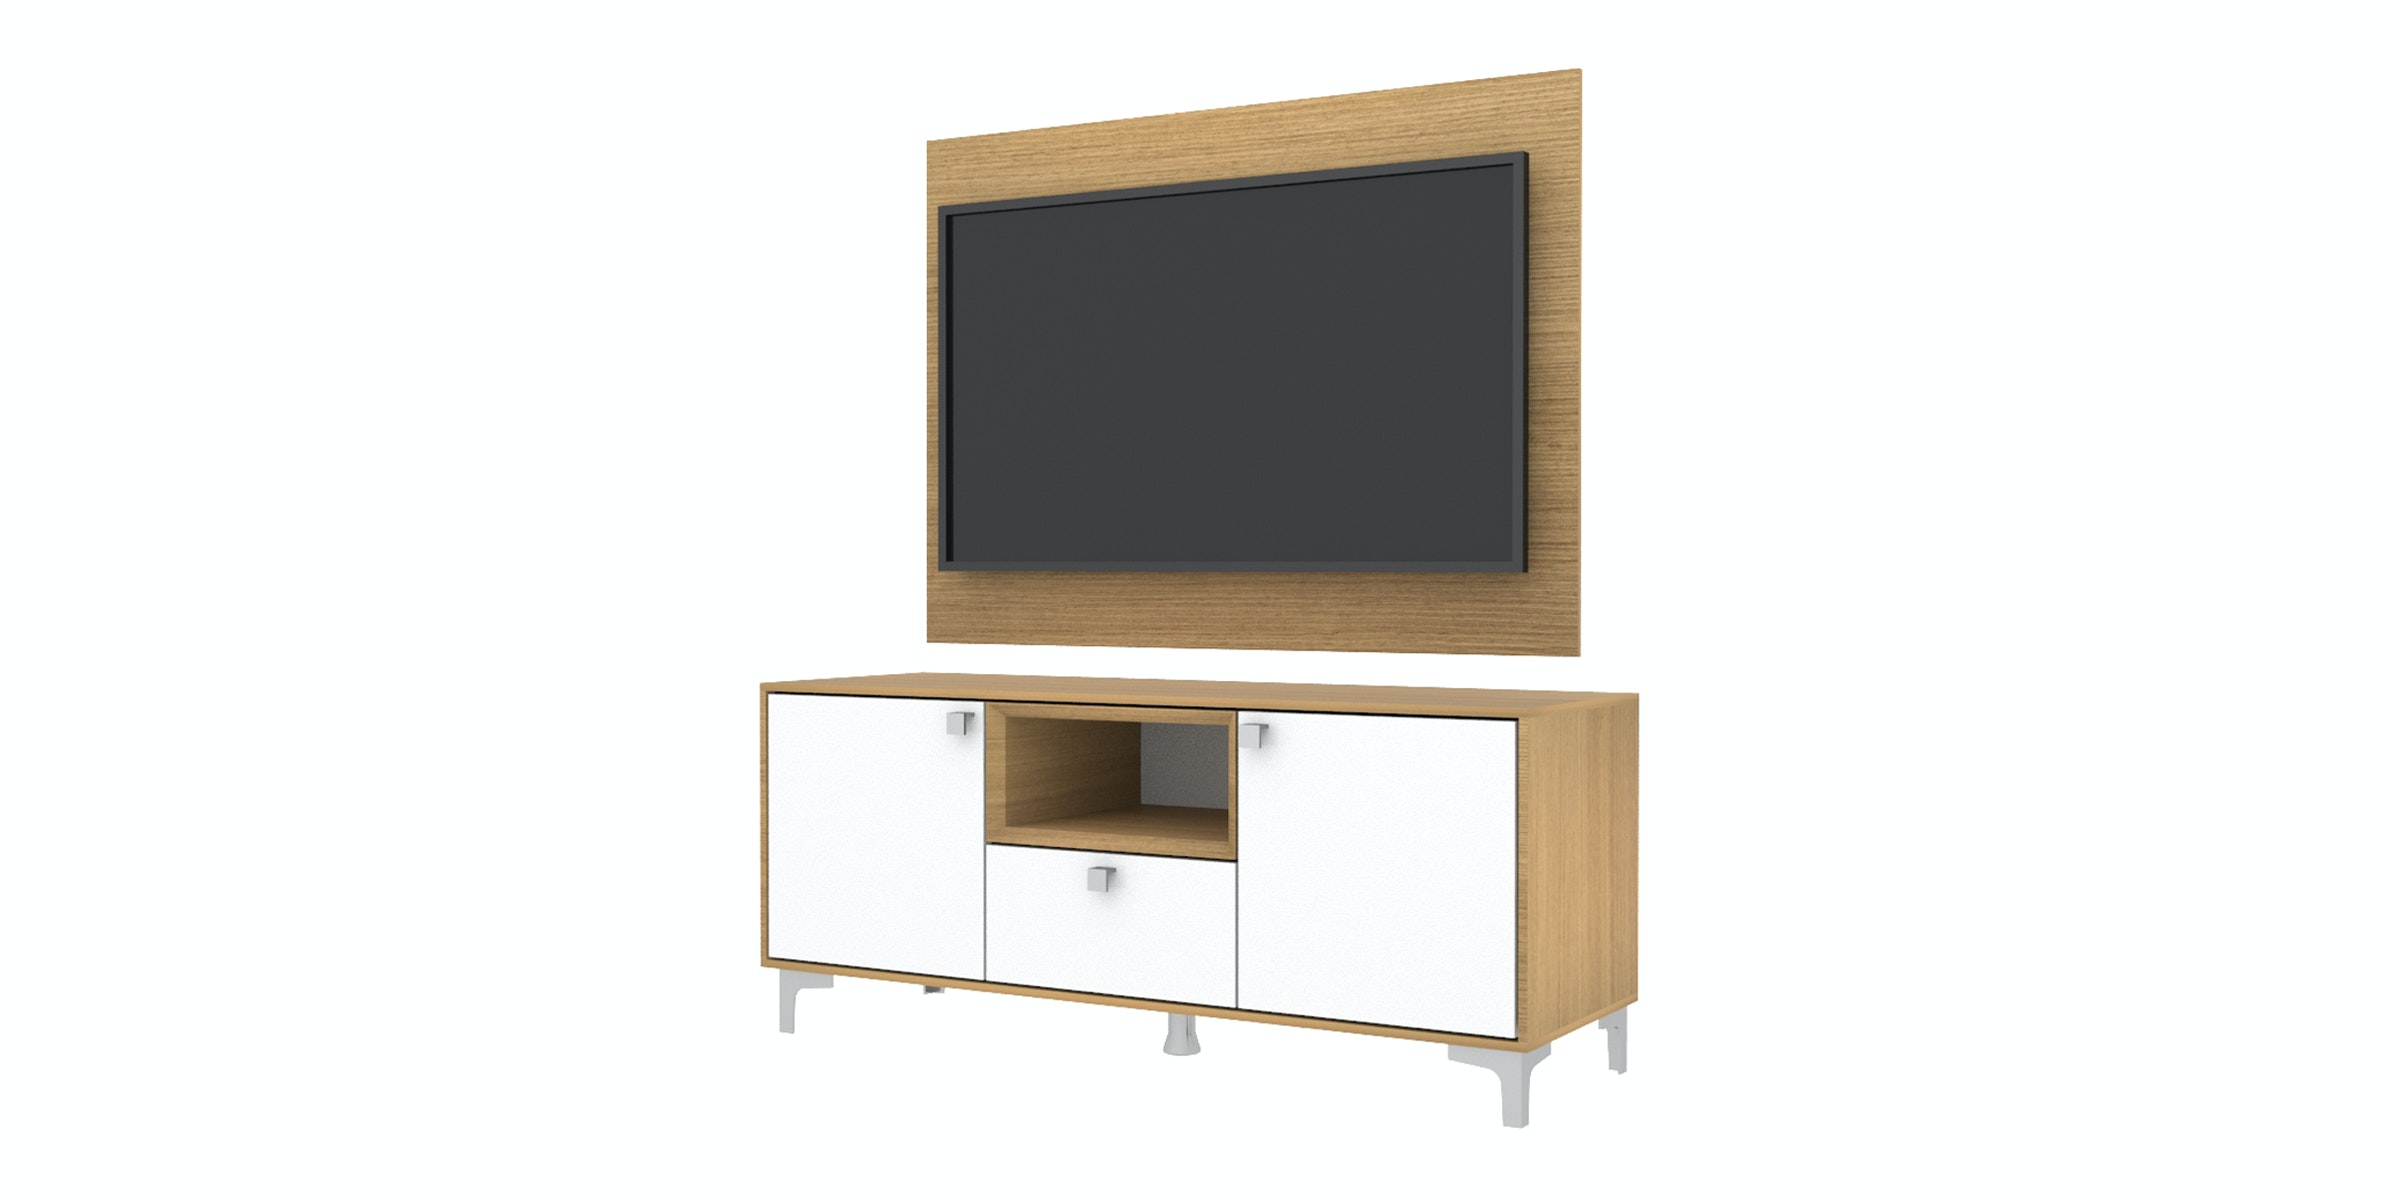 Case Furniture TV Cabinet with Wall Panel PCI006-03-WP Desert Oak - White